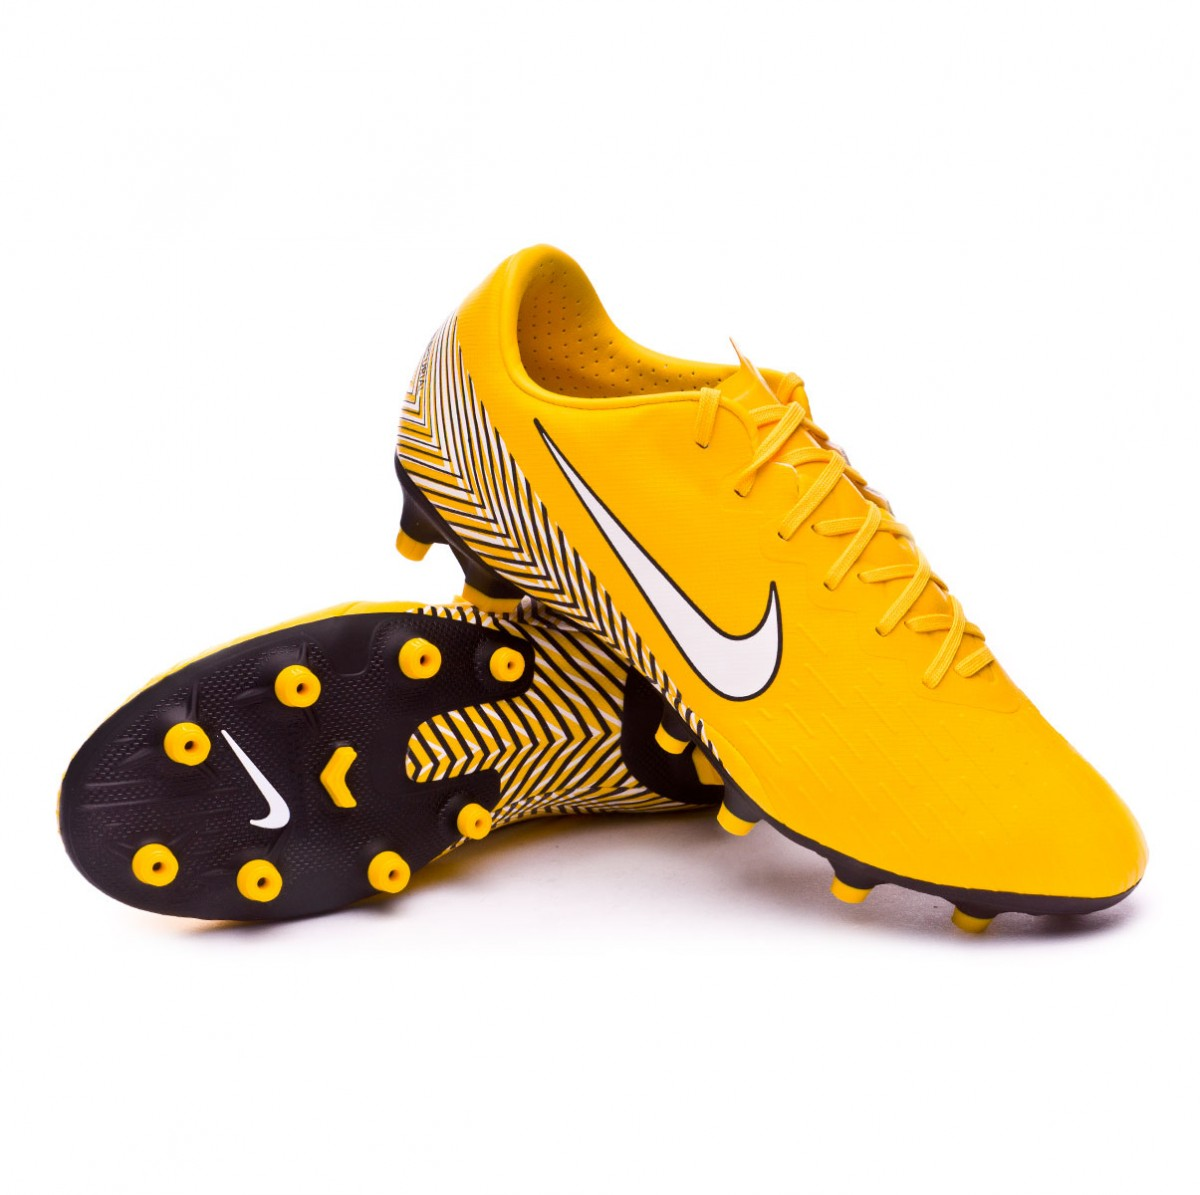 ... Bota Mercurial Vapor XII Pro AG-Pro Neymar Yellow-Black. CATEGORY.  Football boots · Nike football boots 362d508dc3f4c